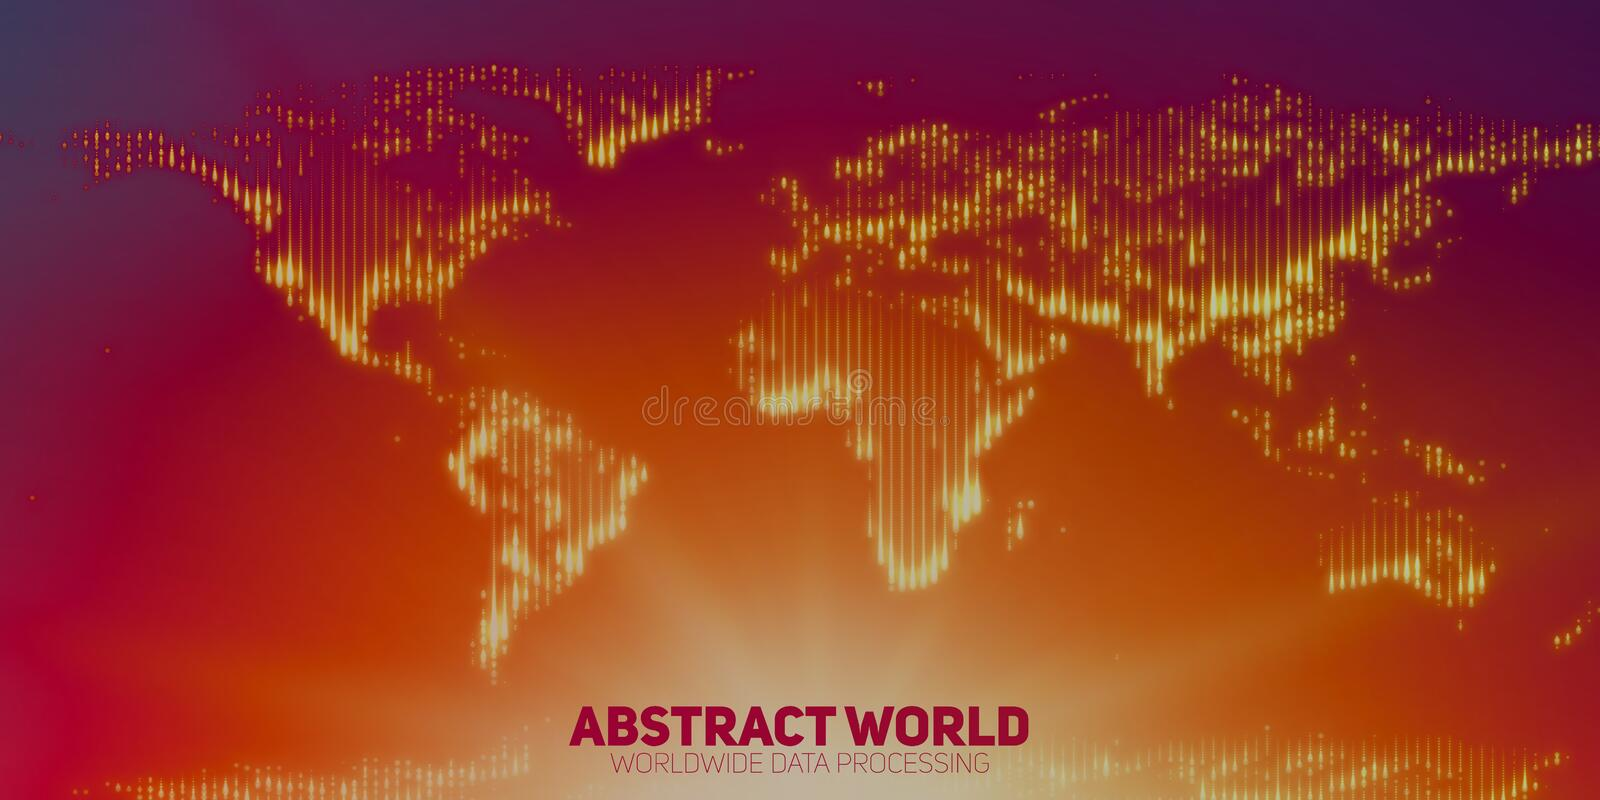 Abstract vector world map constructed of glowing points. Continents with a flare in the bottom. Digital map abstraction in red and violet colors. Digital stock illustration